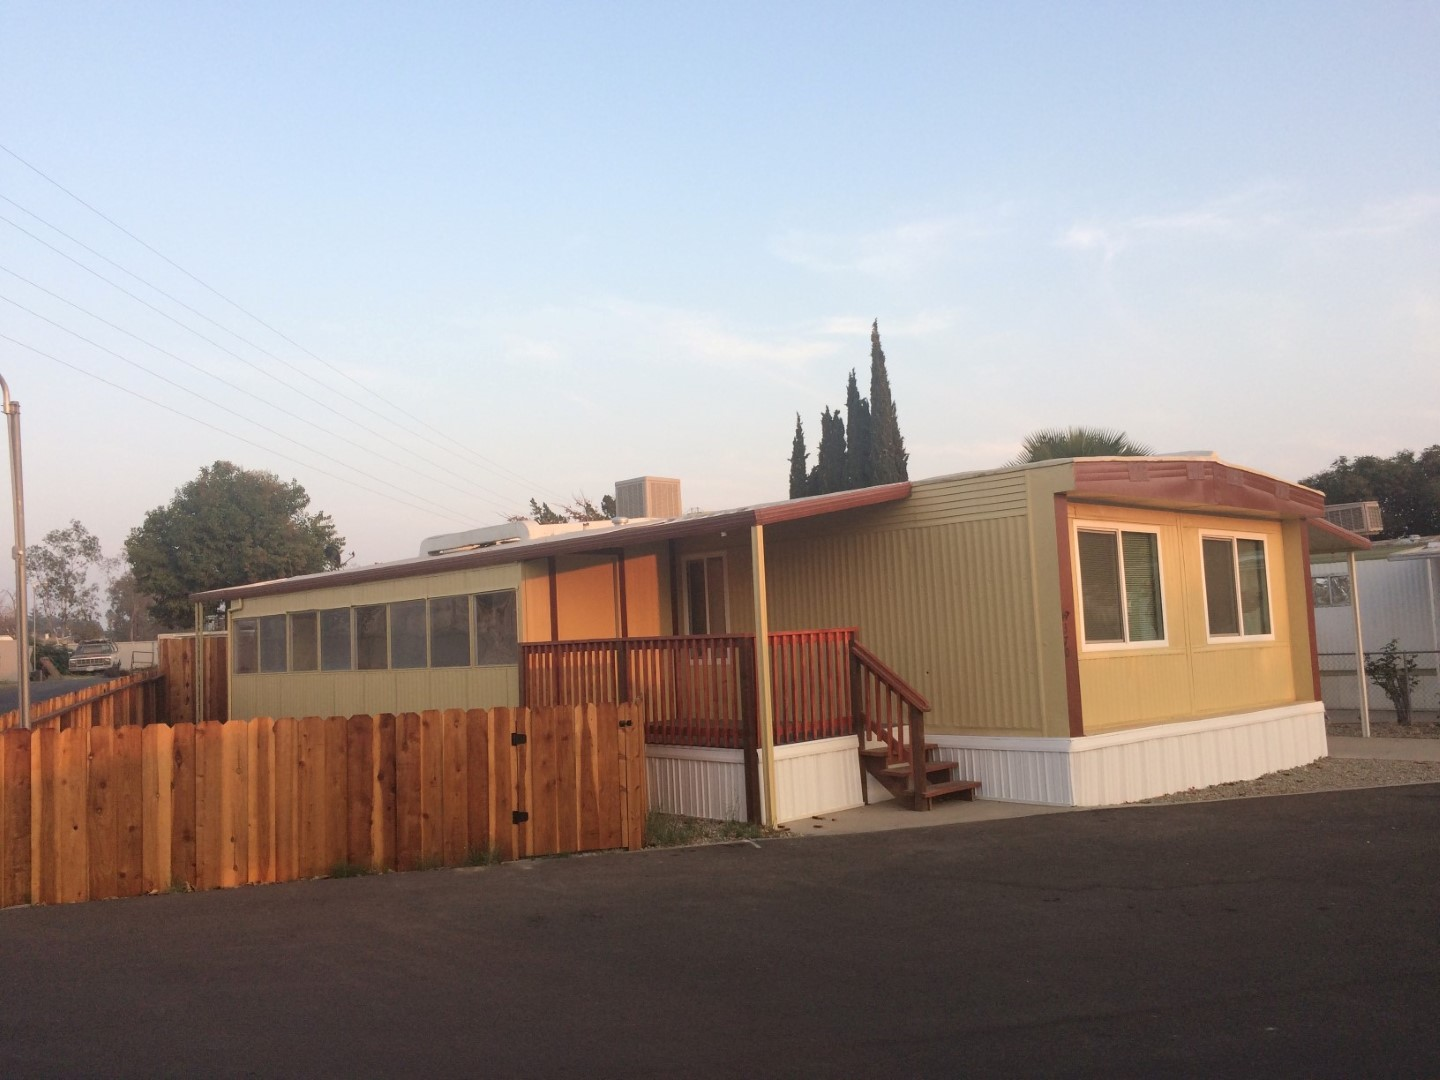 North Star Mobile Home Park